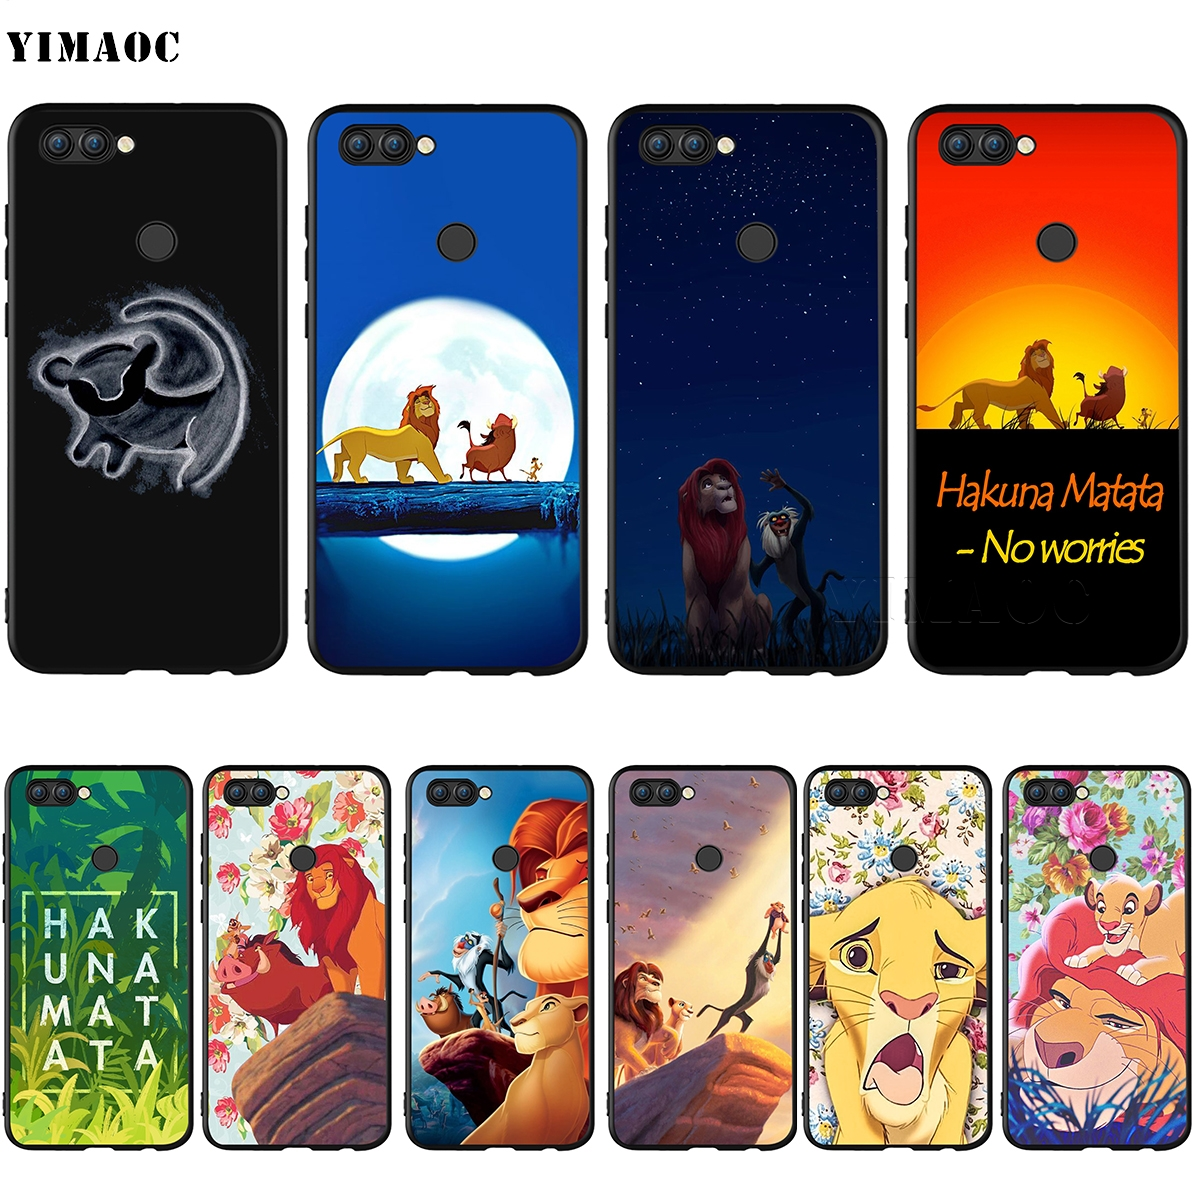 YIMAOC <font><b>Hakuna</b></font> <font><b>Matata</b></font> <font><b>Lion</b></font> <font><b>King</b></font> Case for Huawei Mate 10 P8 P9 P10 P20 P30 P Smart Lite Pro Mini 2017 image